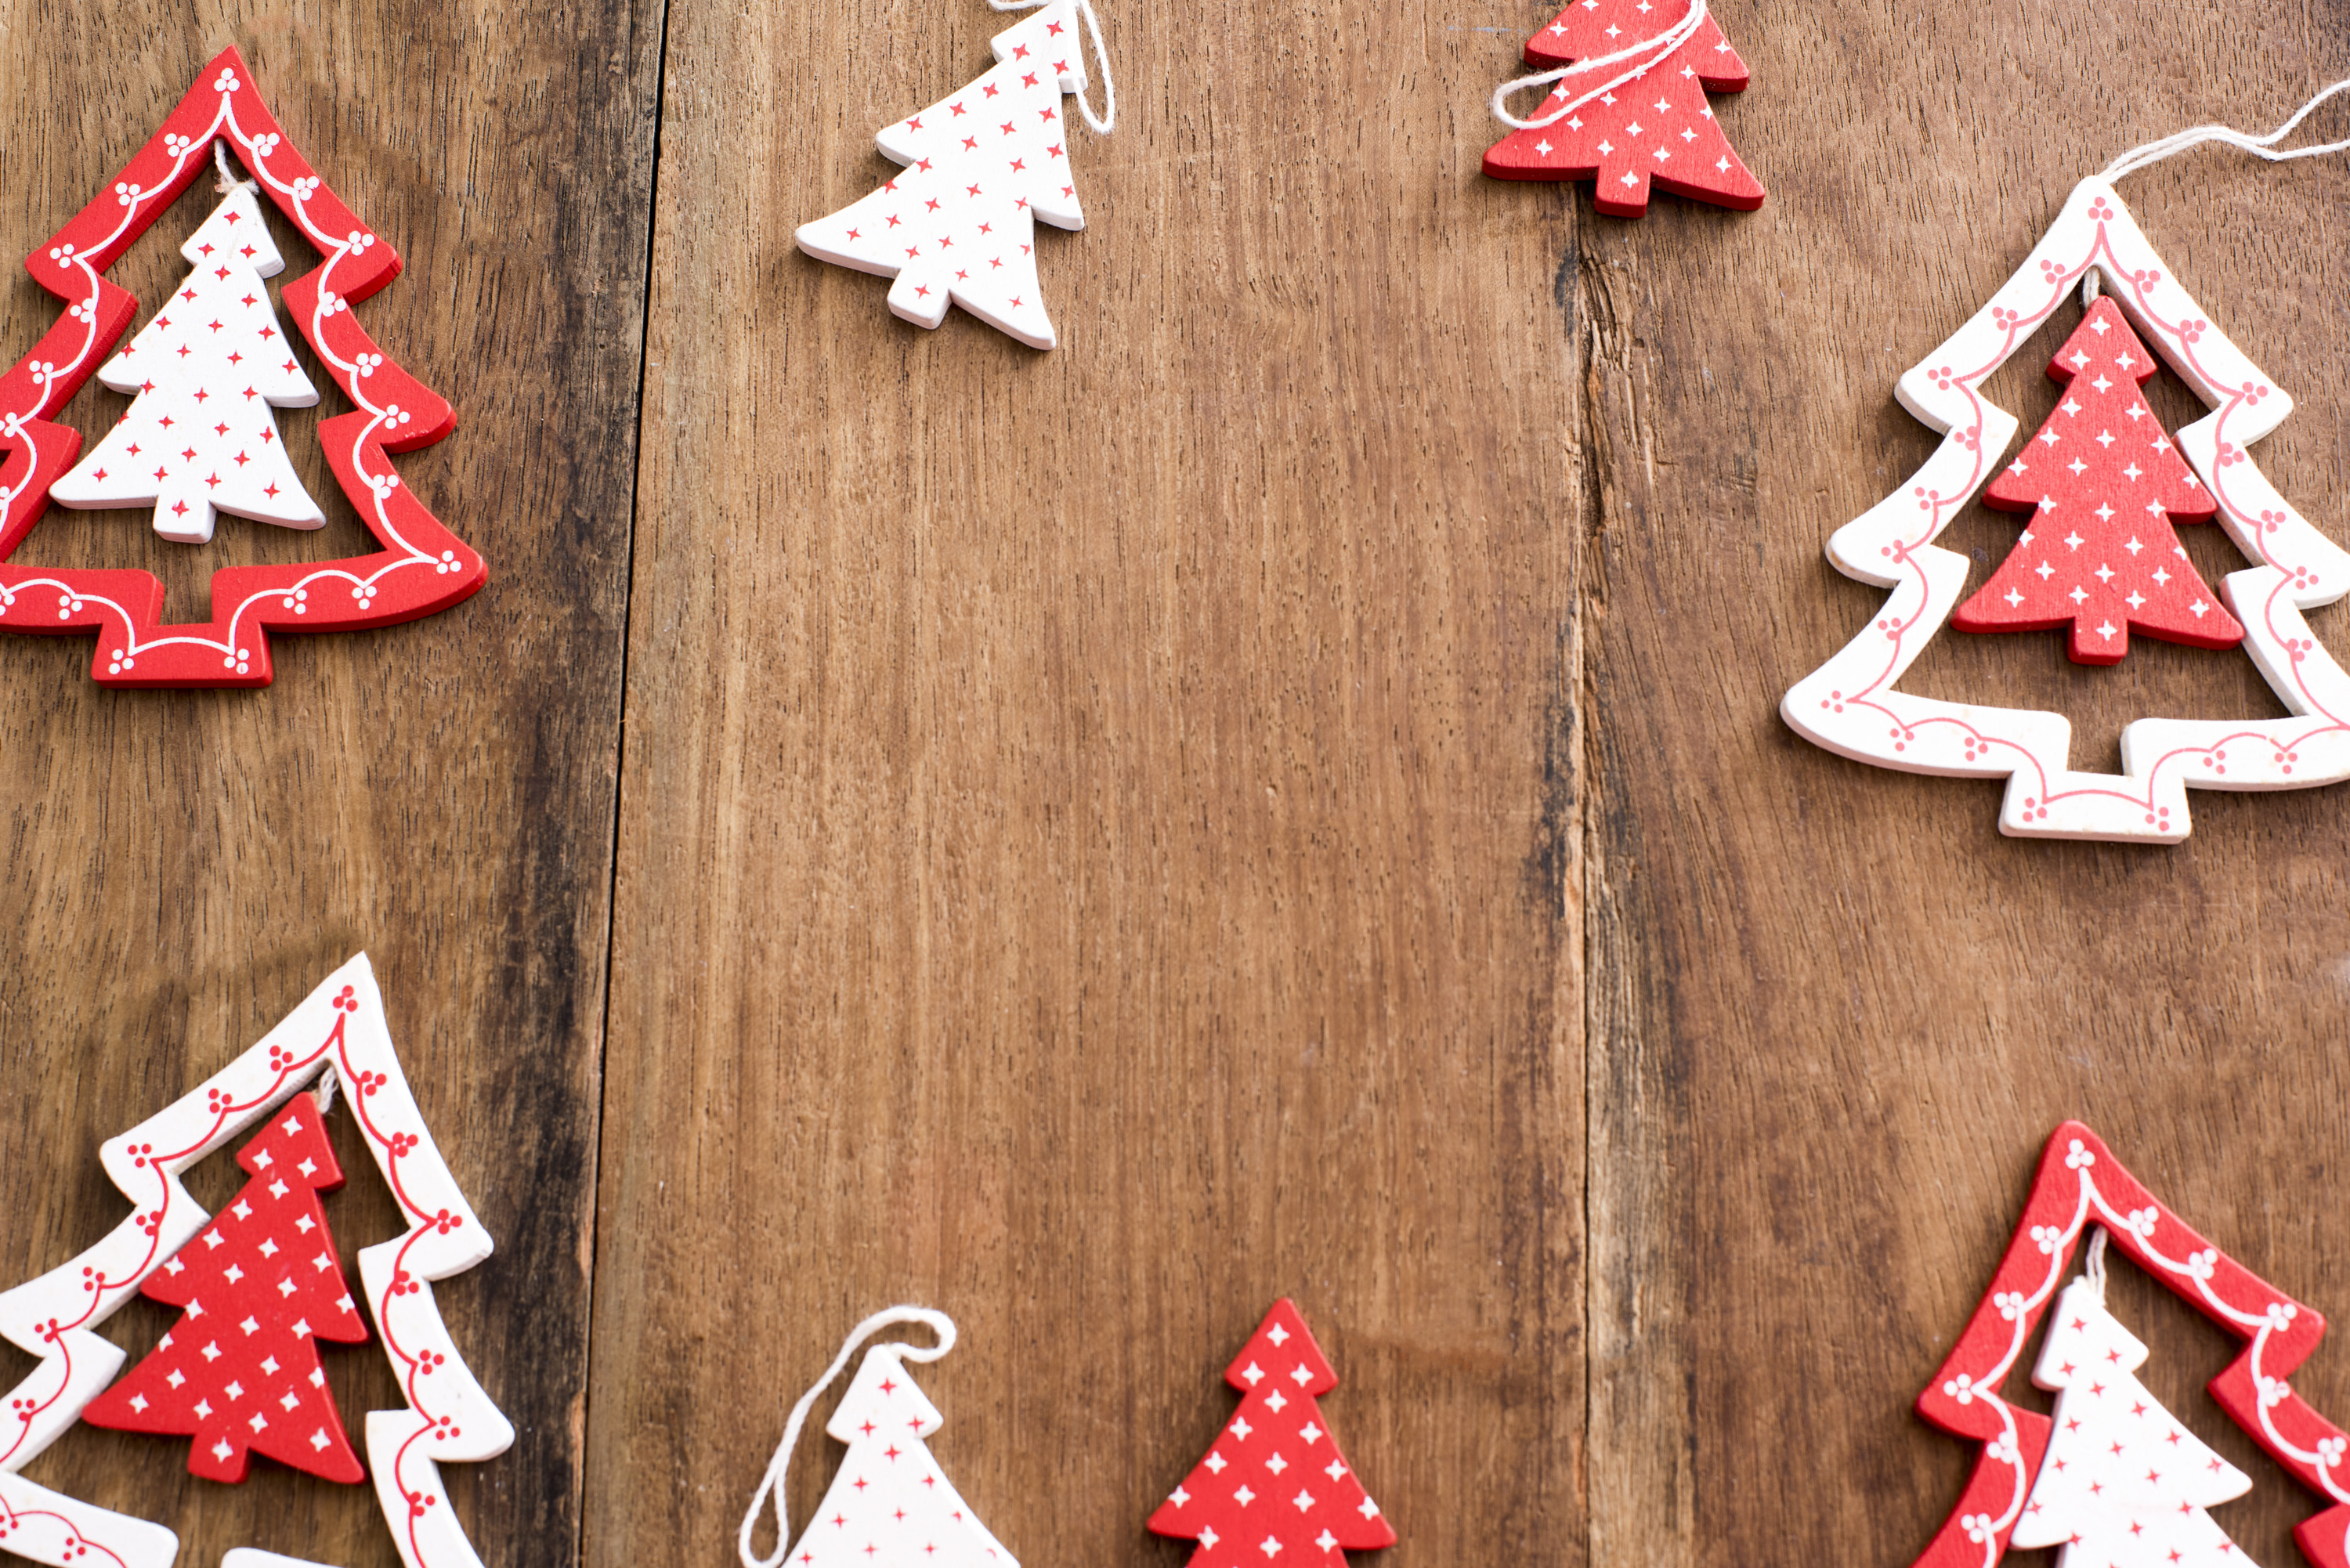 Wooden Christmas Decorations.Free Stock Photo 13165 Wooden Christmas Tree Decoration